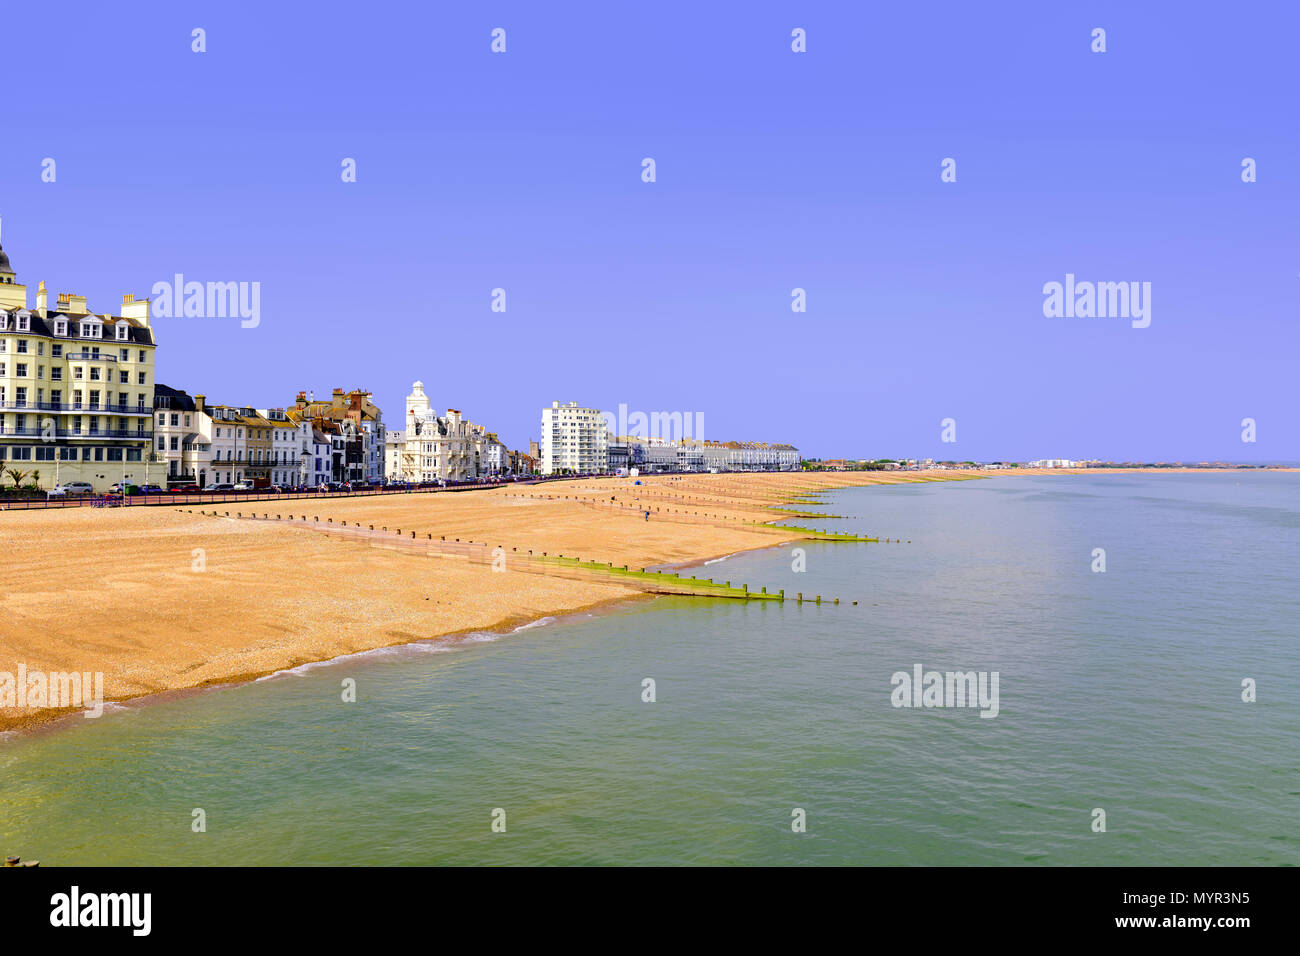 View of Eastbourne beach from the pier - Stock Image